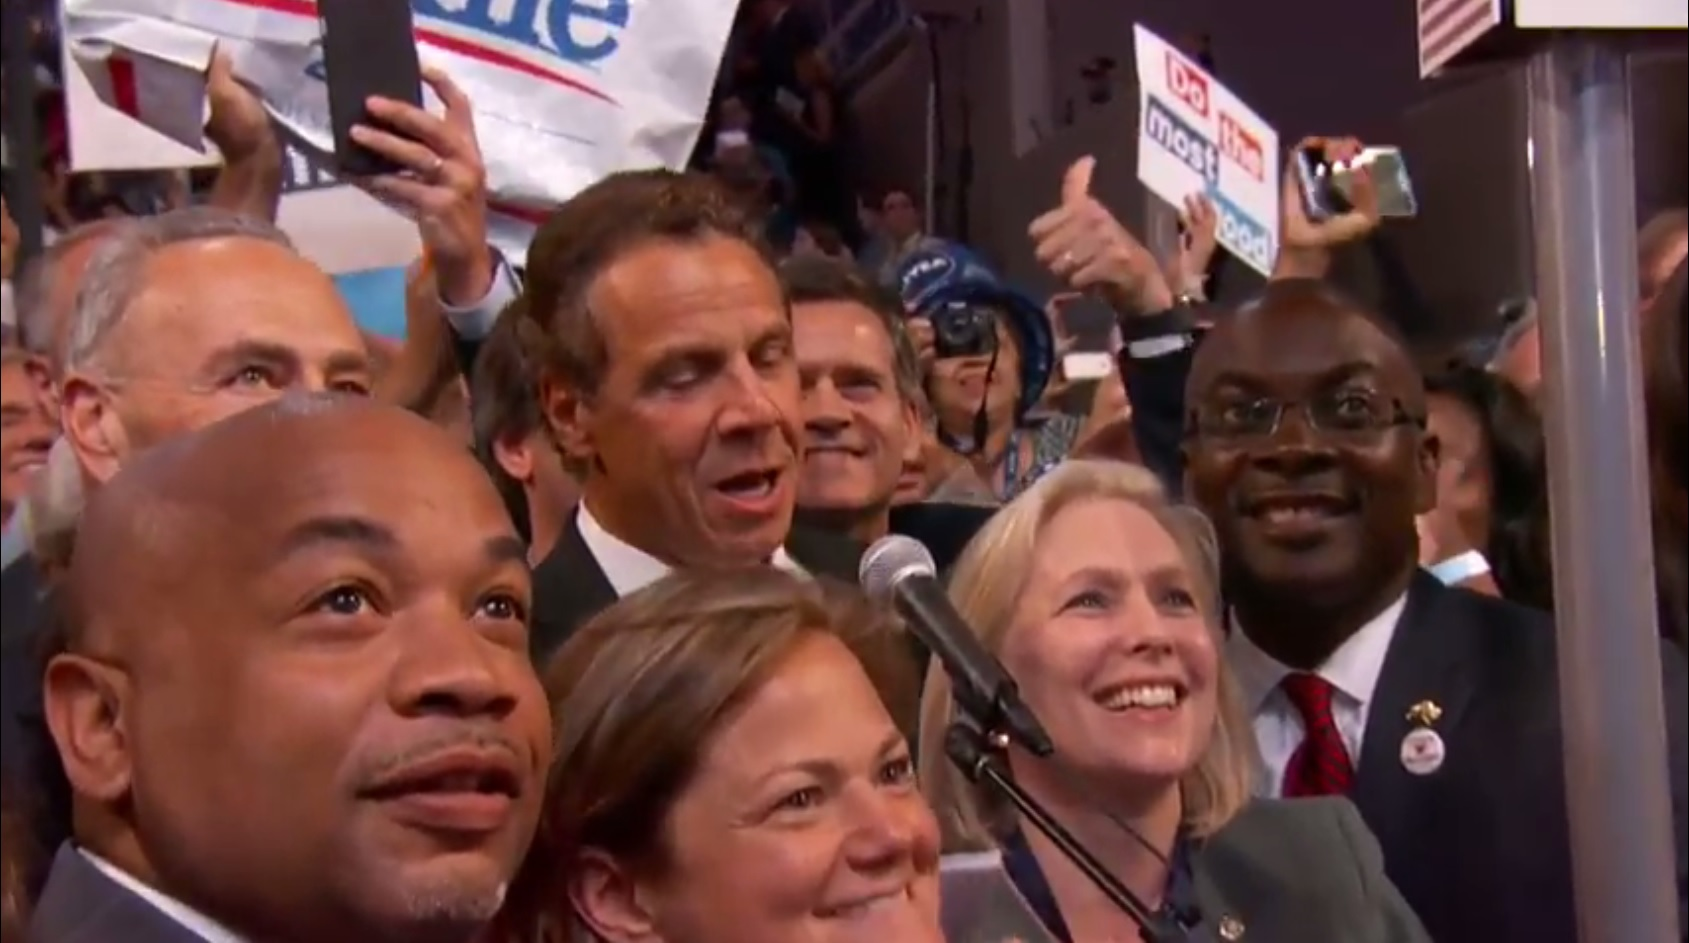 Mayor Byron Brown and Sen. Kirsten Gillibrand look on as Governor Andrew Cuomo casts the votes for the New York delegation at the Democratic convention on Tuesday.